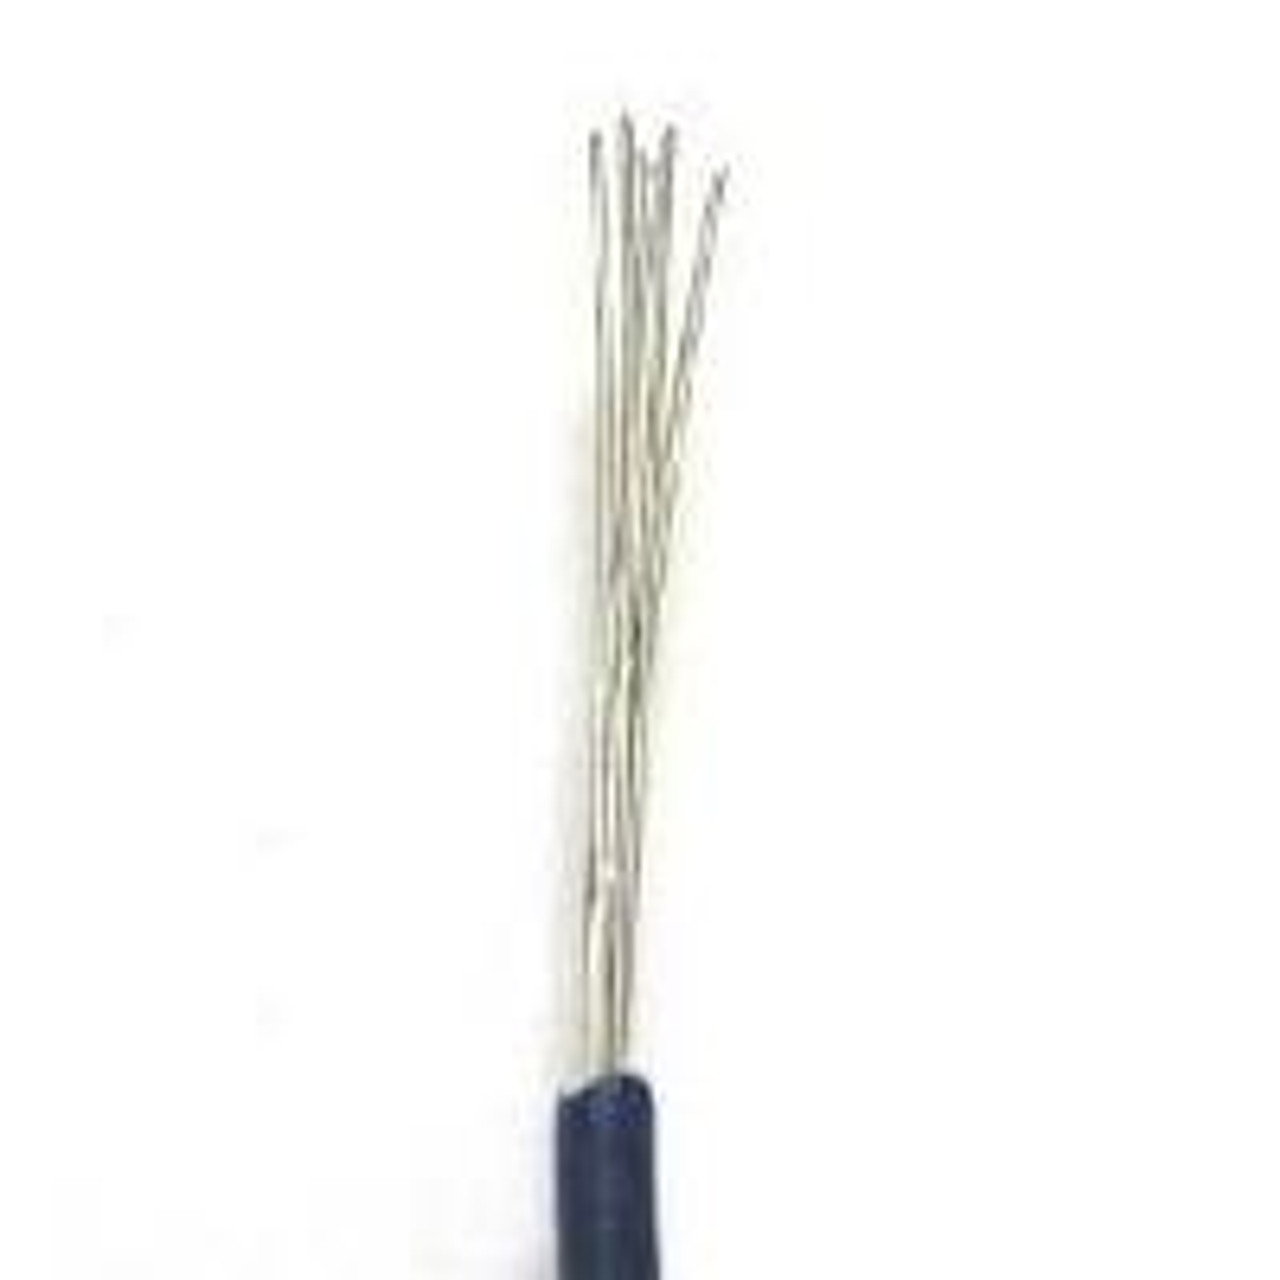 Stranded 22 Gauge Guitar Circuit Wire-Blue